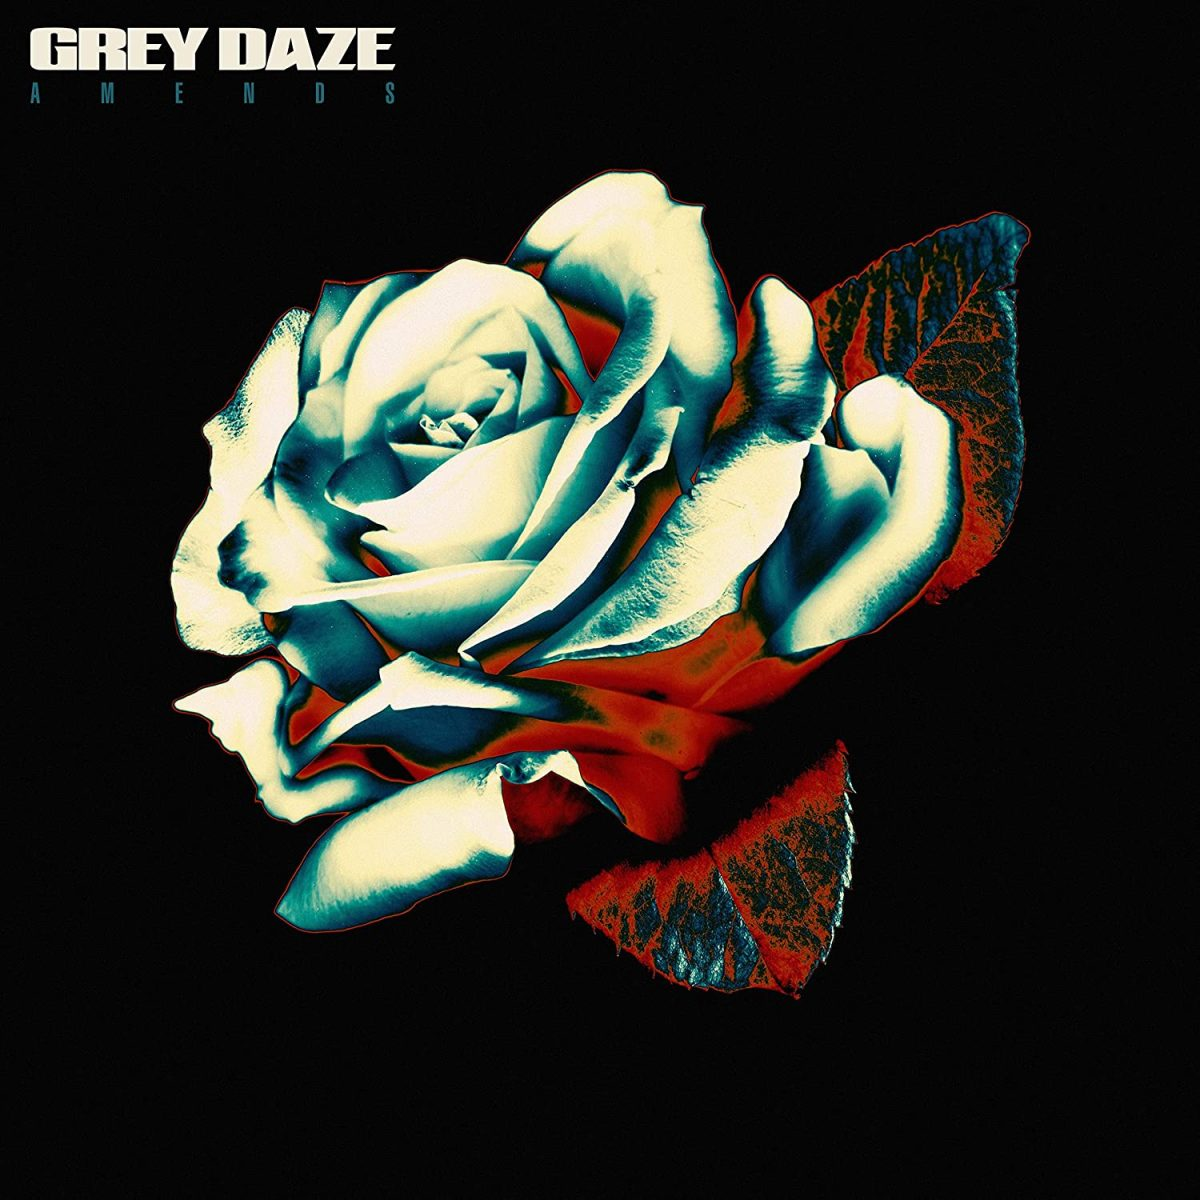 grey-daze-amends-das-denkmal-album-review